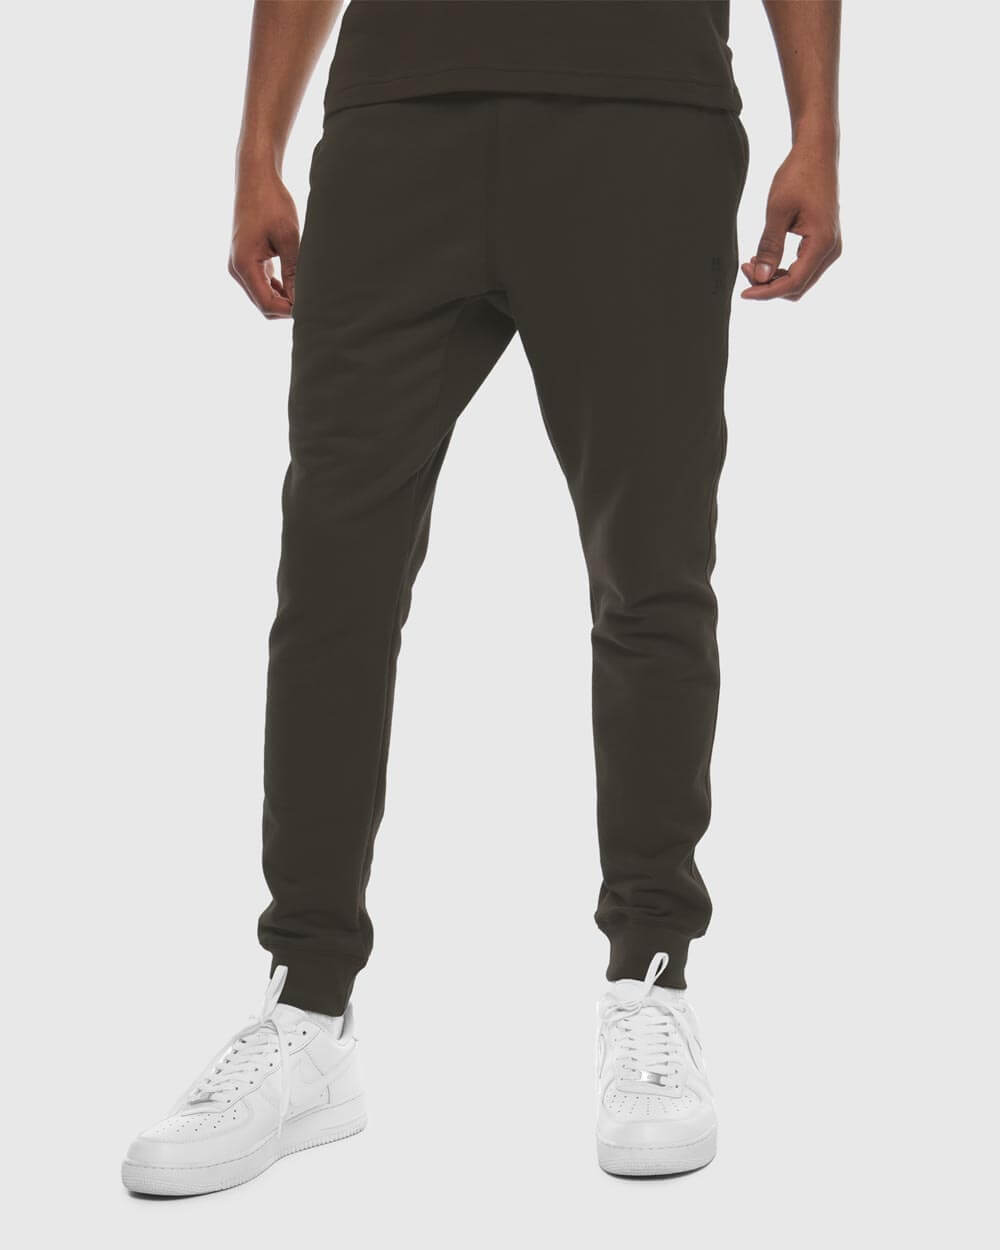 MID-WEIGHT FRENCH TERRY SWEATPANT - STONE GREEN